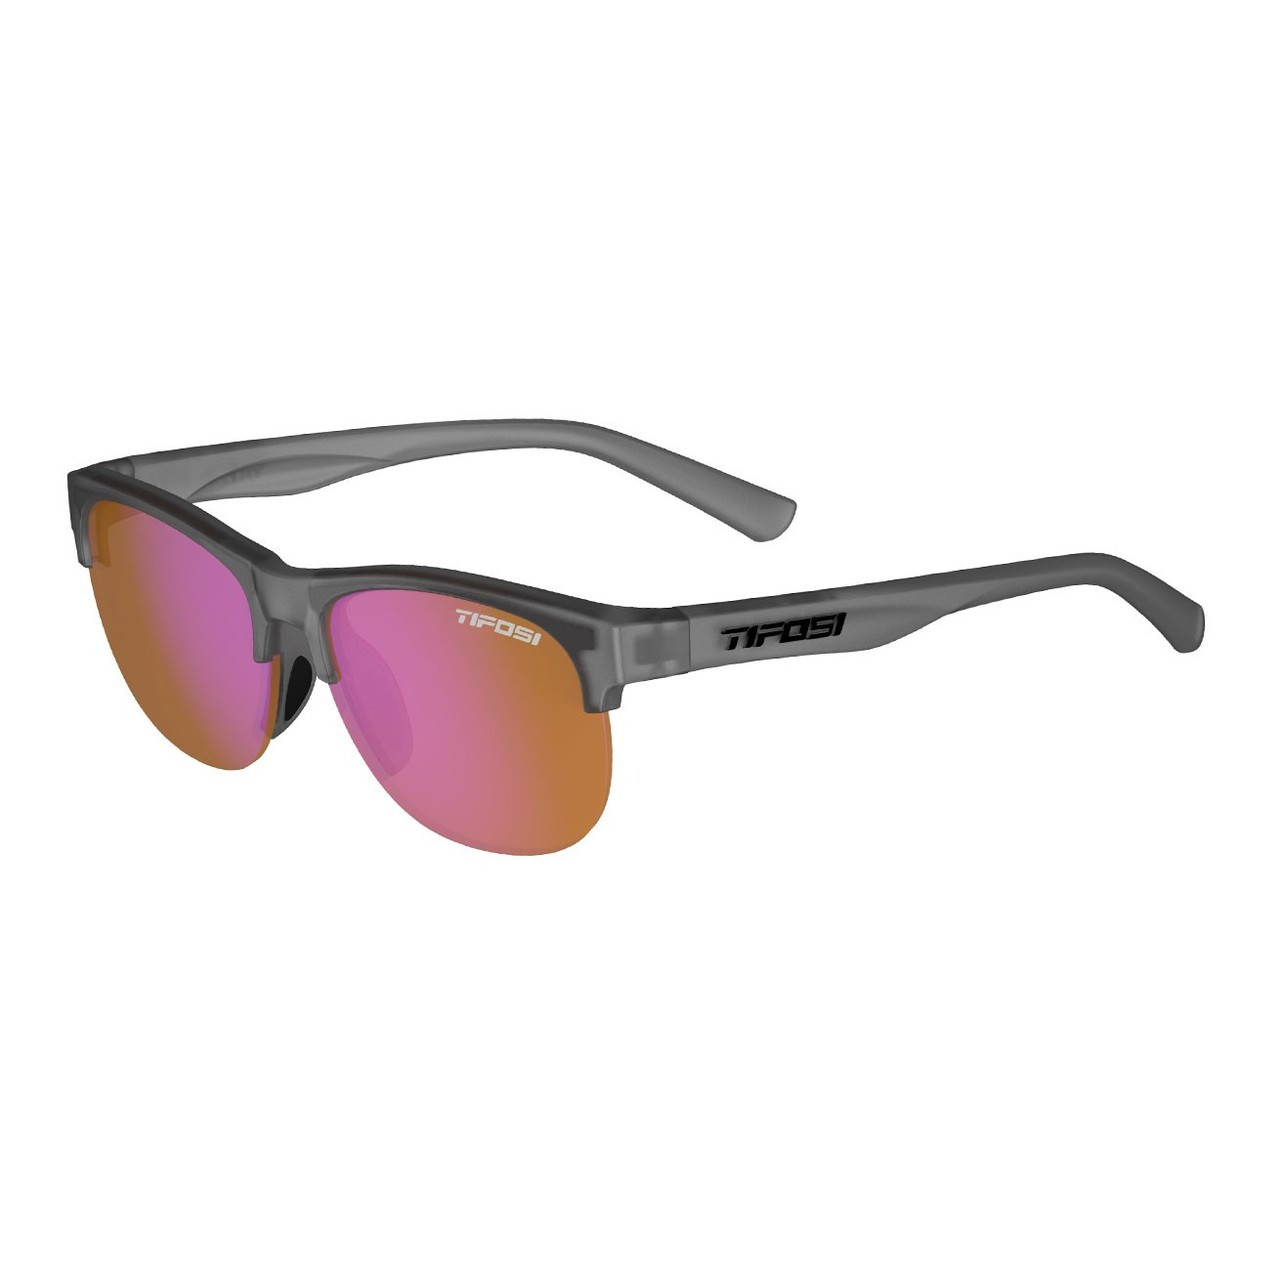 Tifosi Swank SL Sunglasses - 2019 price